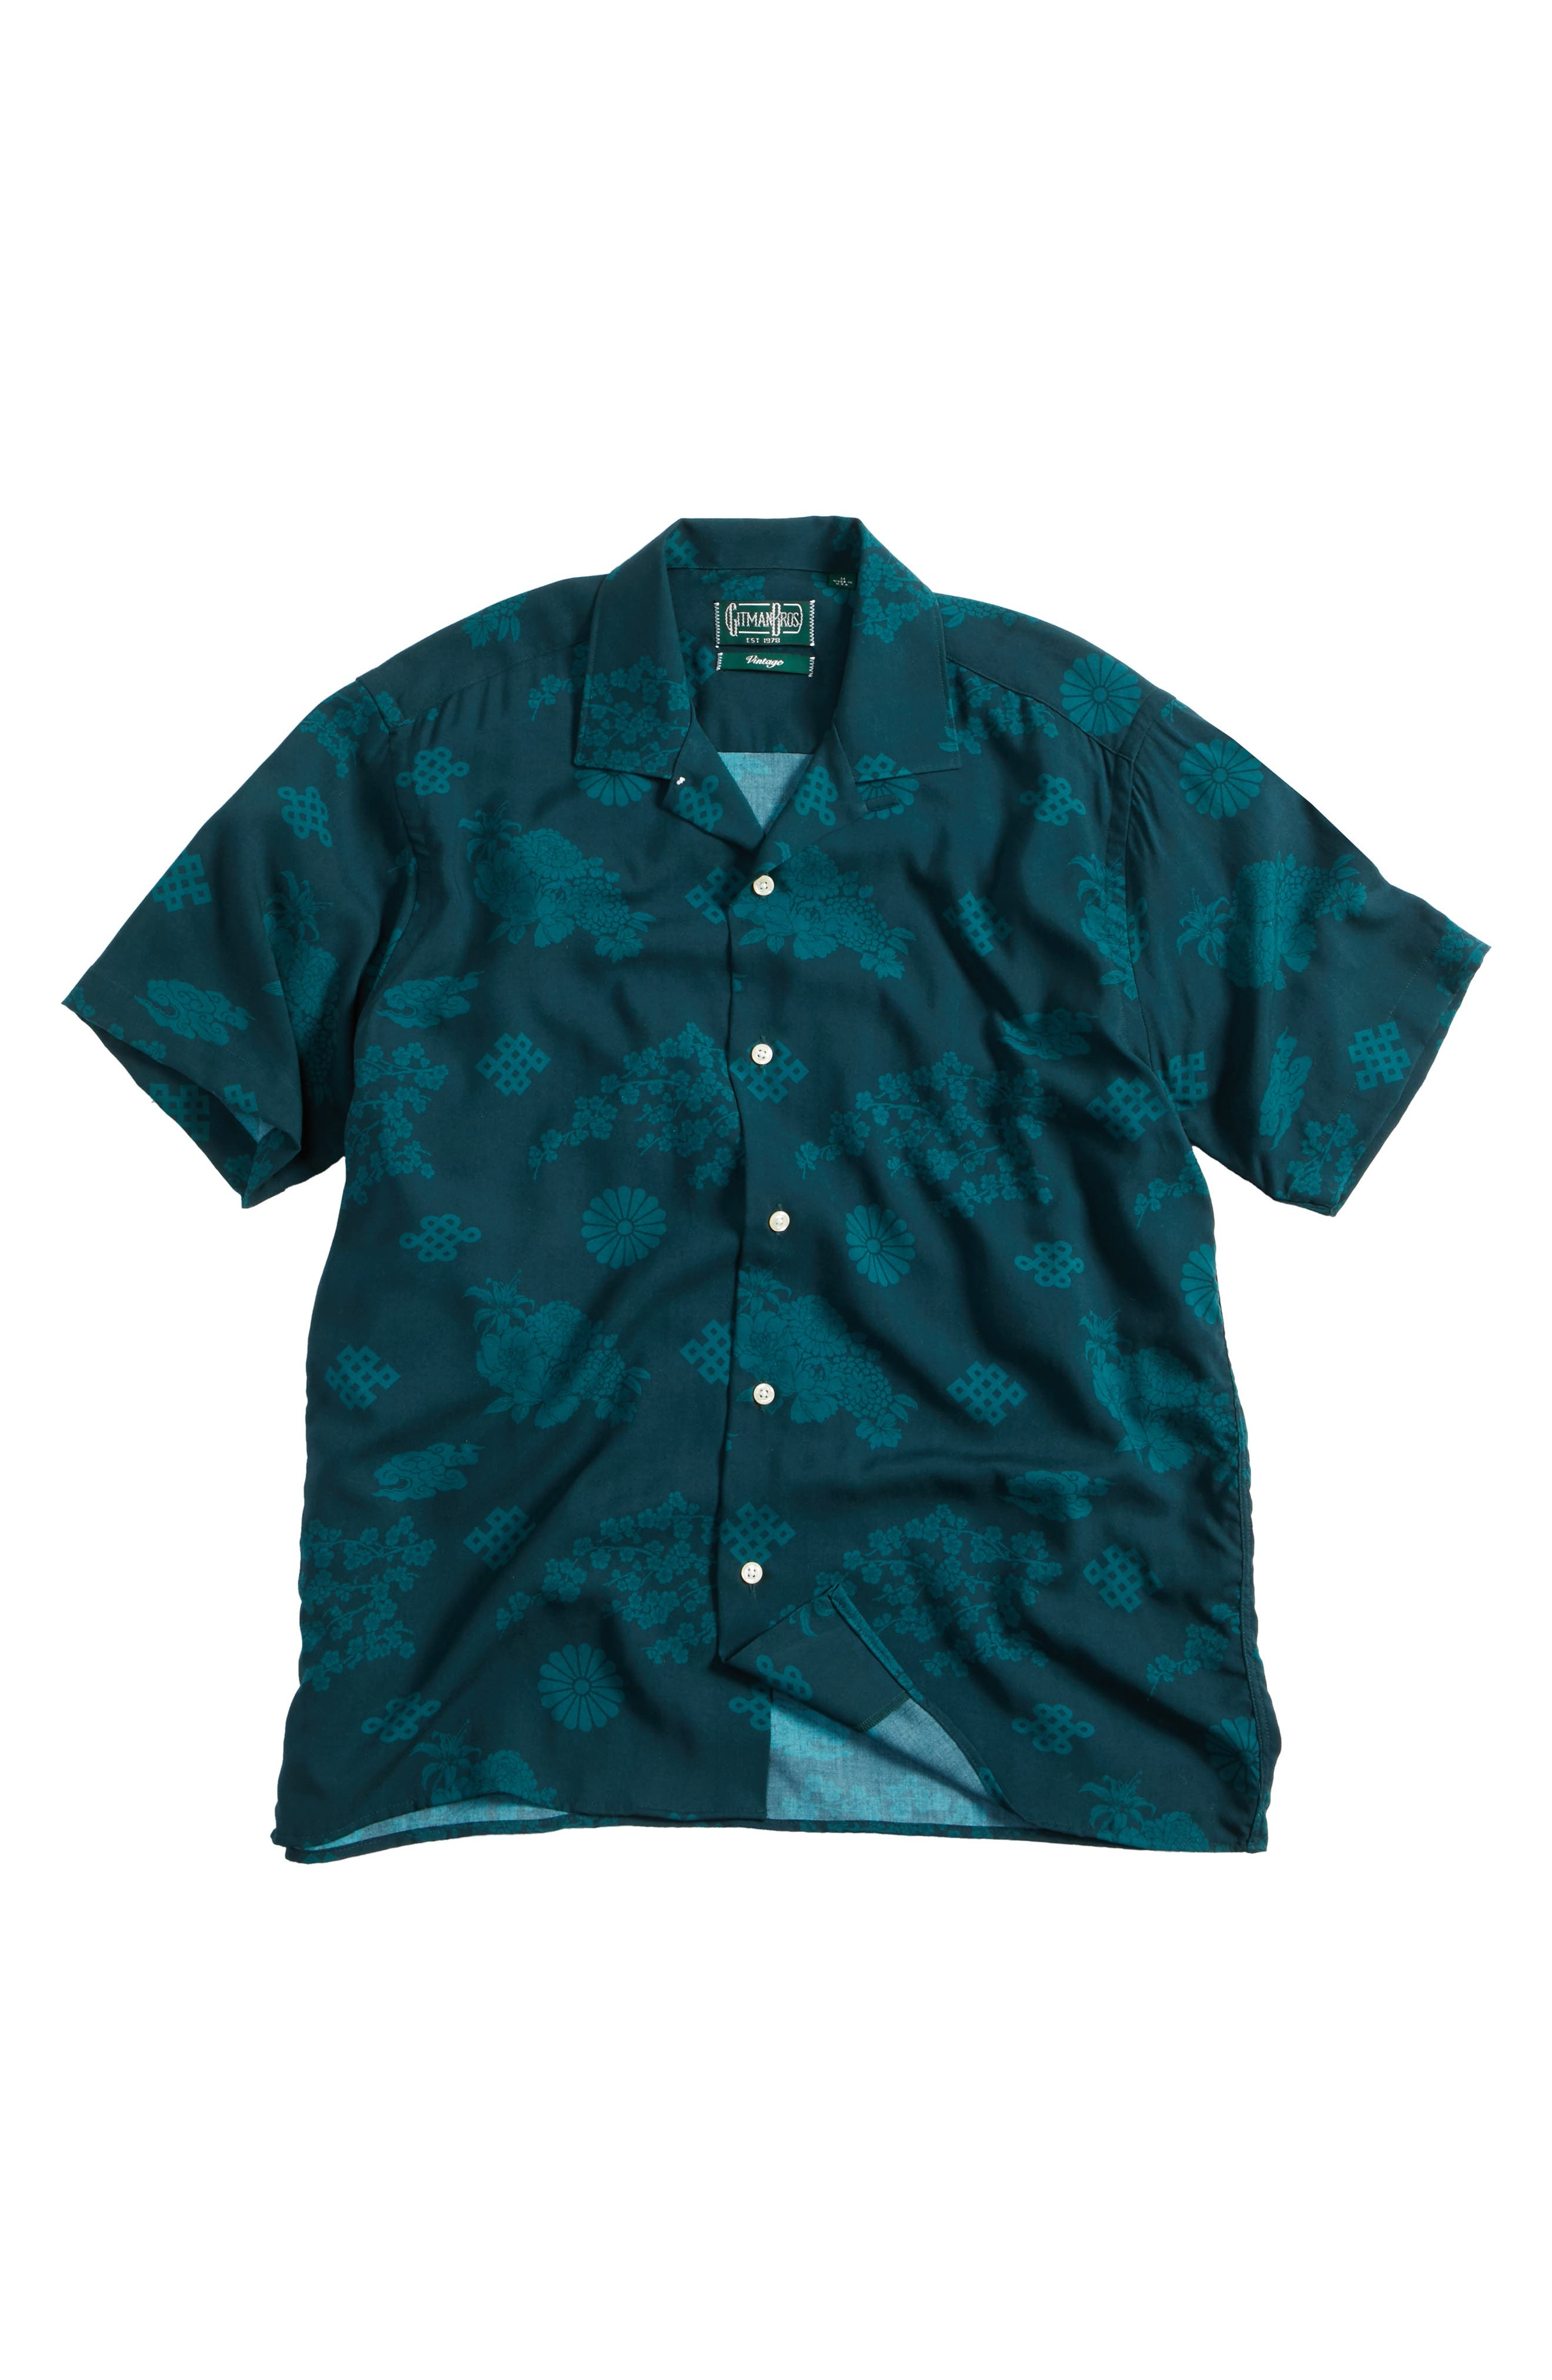 x The North Face Men's Floral Print Camp Shirt,                         Main,                         color, Green Ground